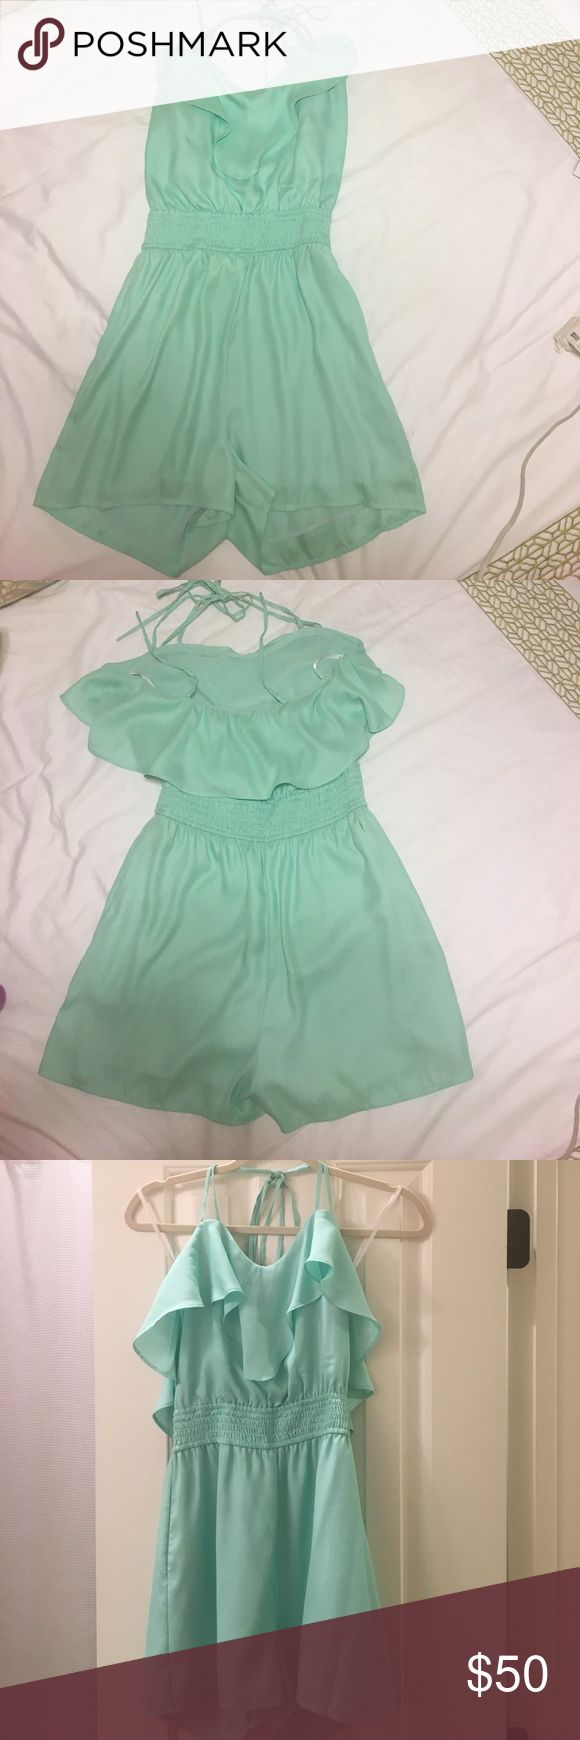 BCBG Romper Aqua/Green, Ruffles along the top on the front and back, silky, perfect length, VERY comfortable!! Only worn once or twice. BCBGeneration Other